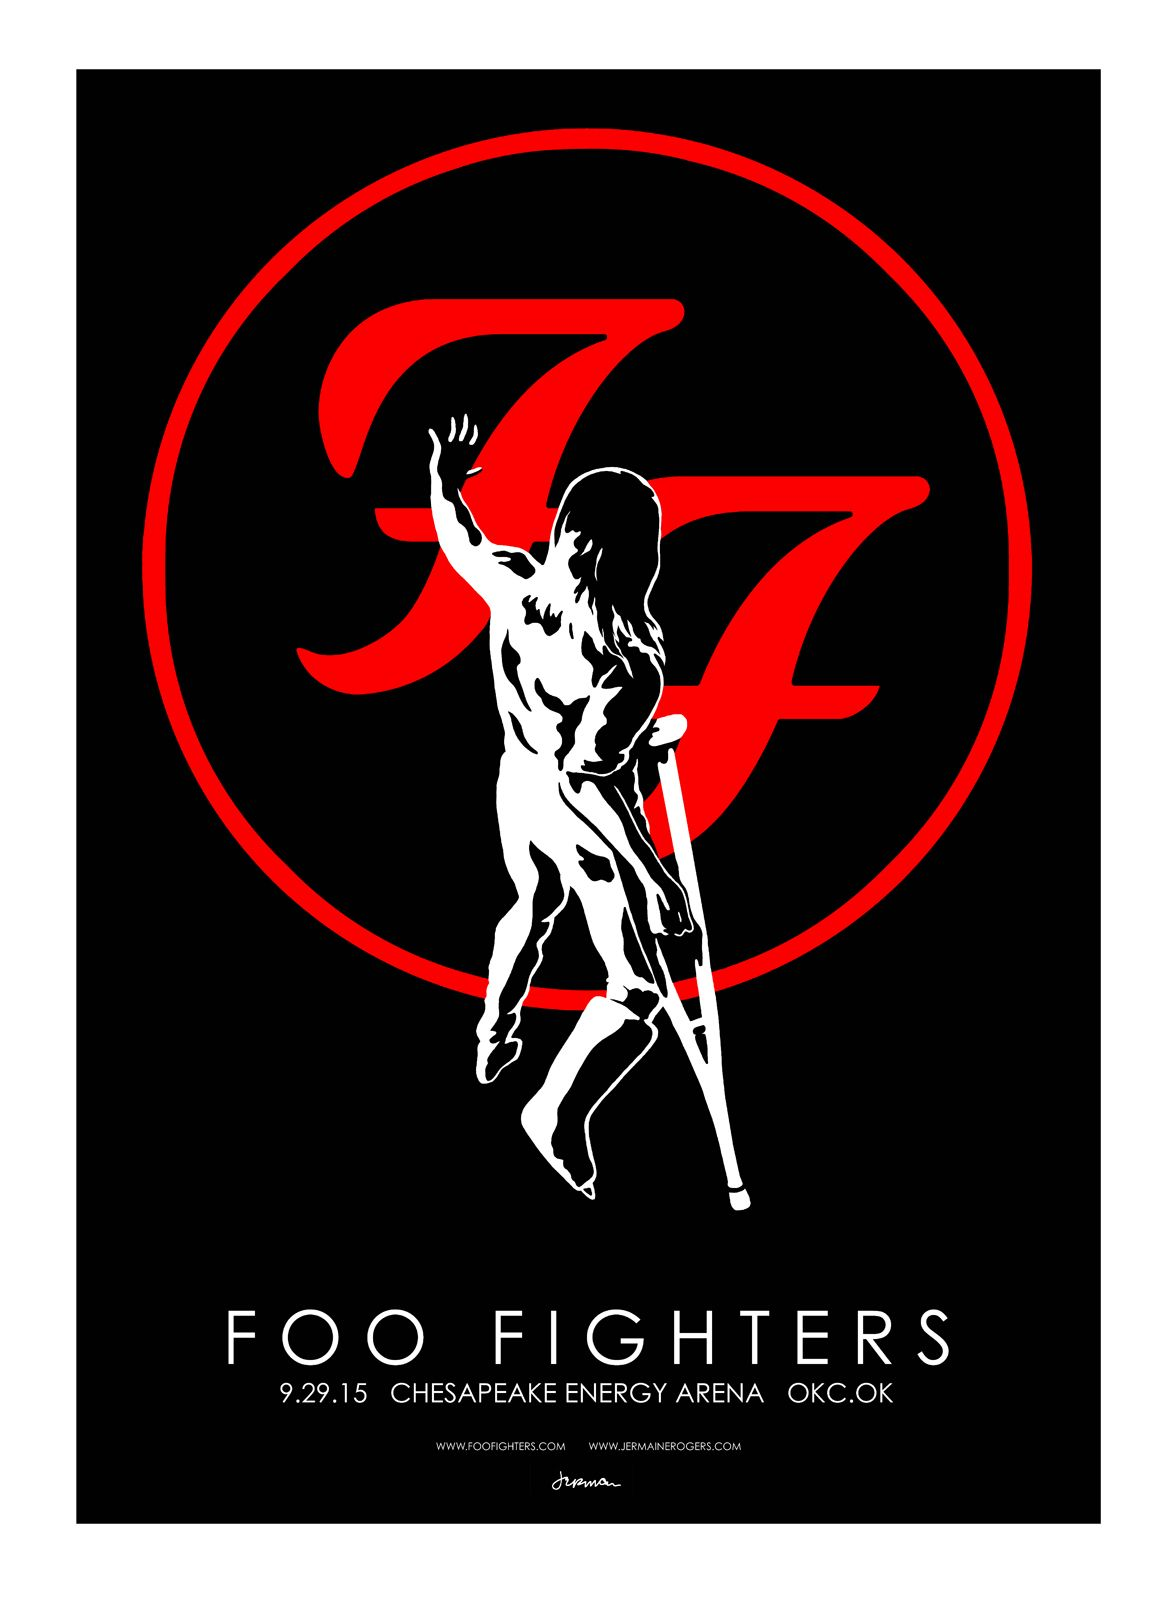 Foo Fighters, Oklahoma poster by Jermaine Rogers